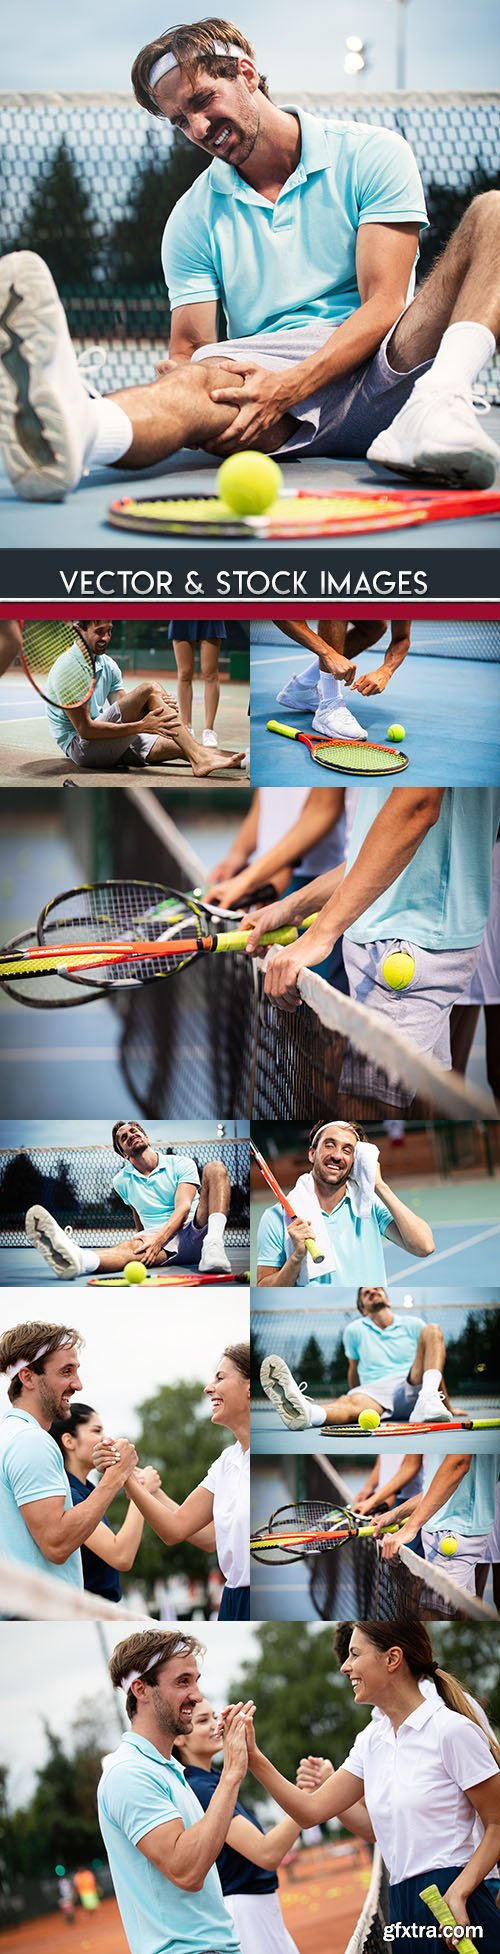 Tennis court competition and trauma at man